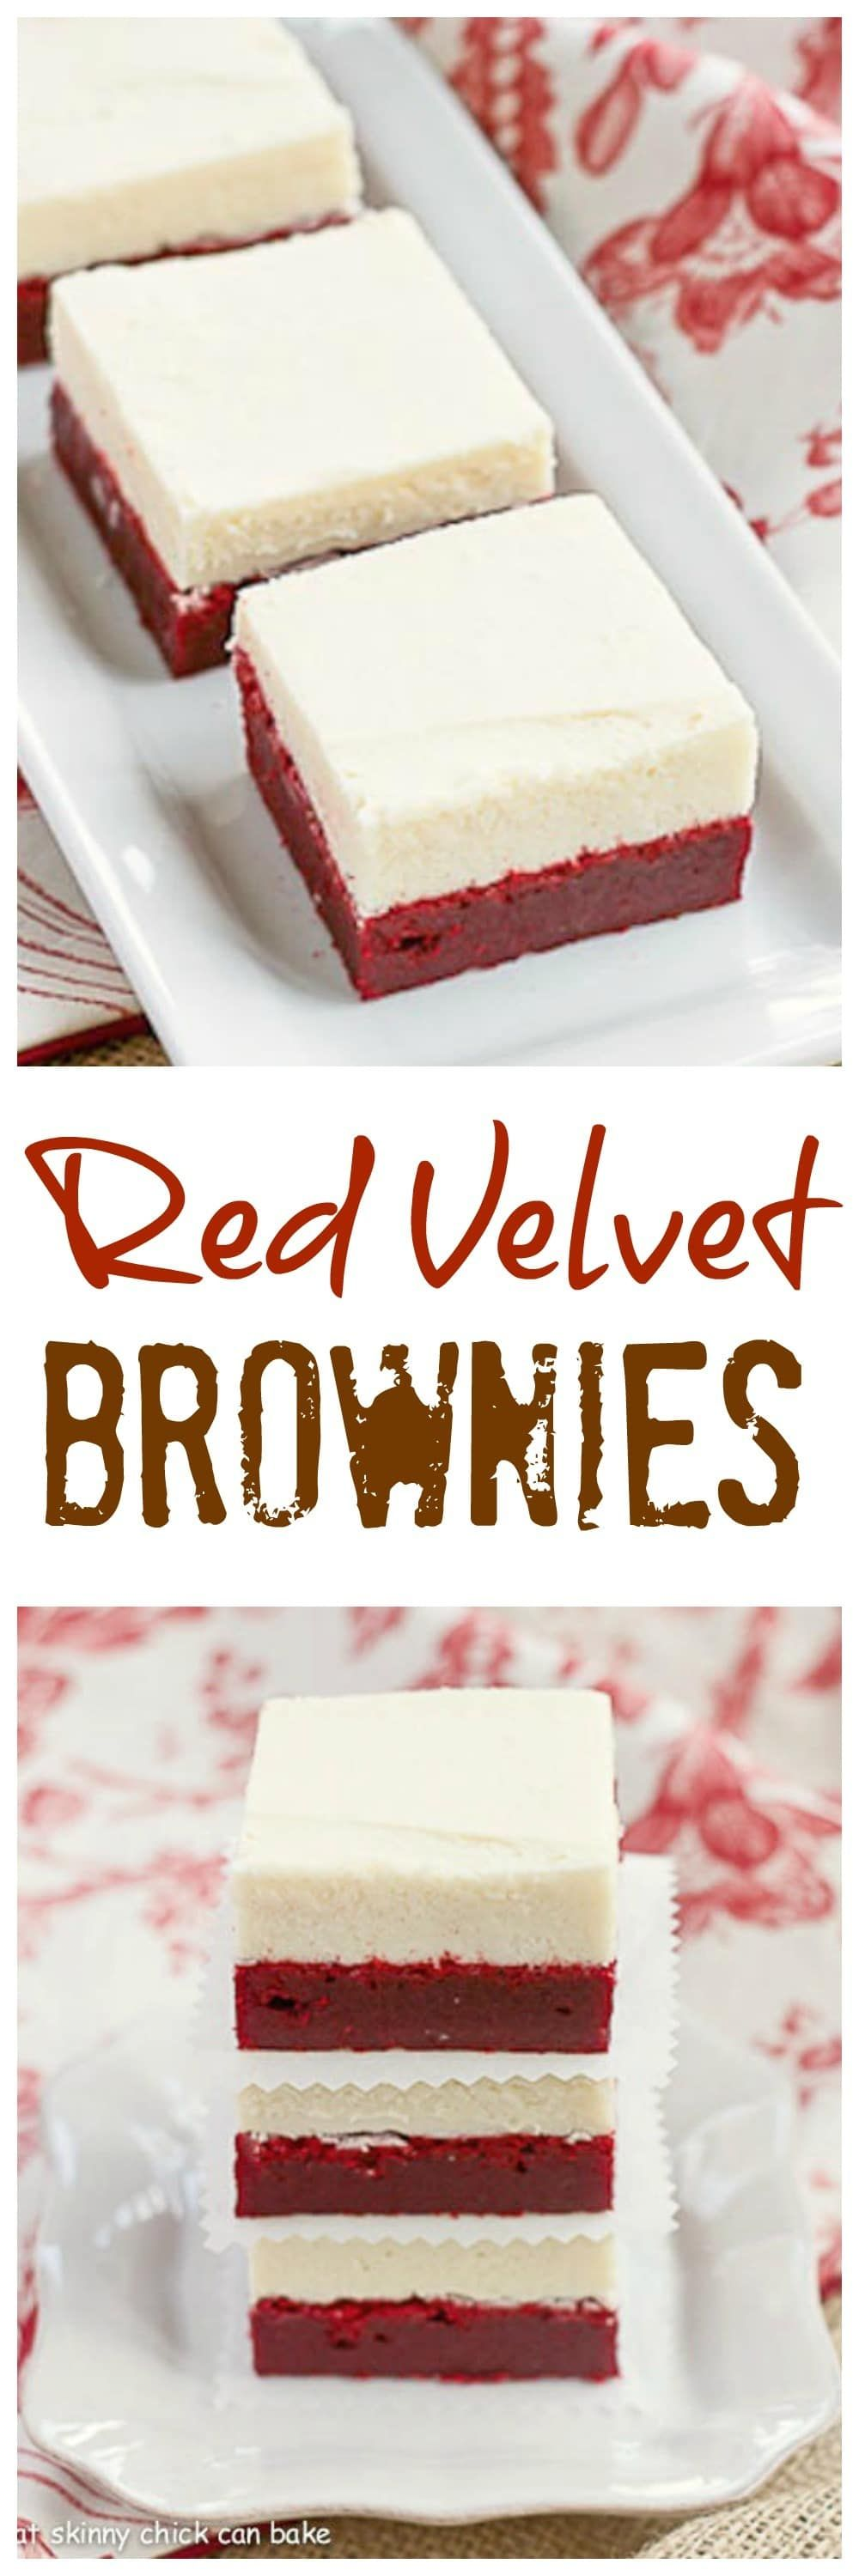 Red Velvet Brownies   Denser than the classic cake , these decadent brownies are topped with white chocolate buttercream! @lizzydo